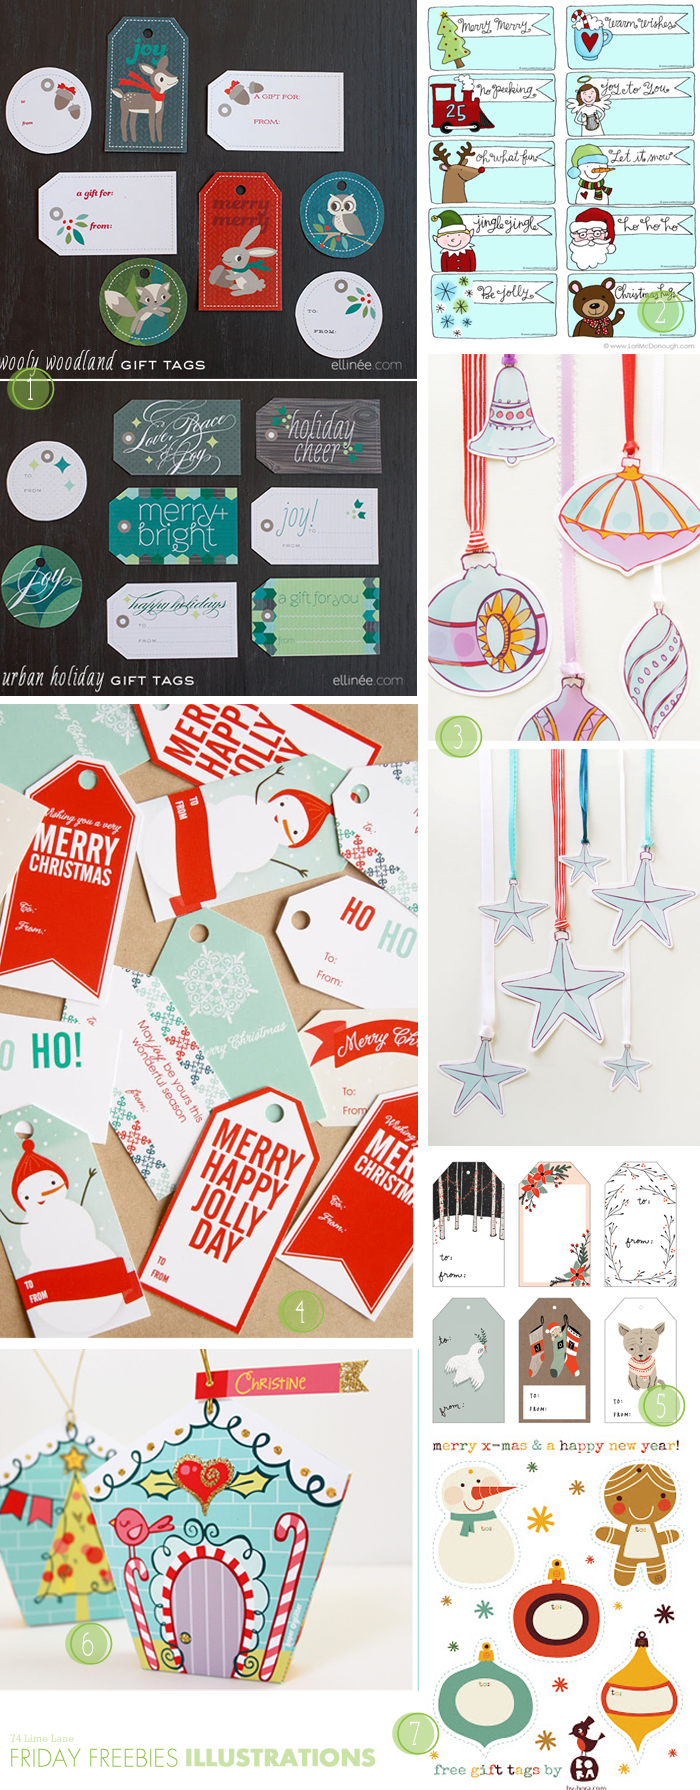 {friday freebies} big Christmas round-up